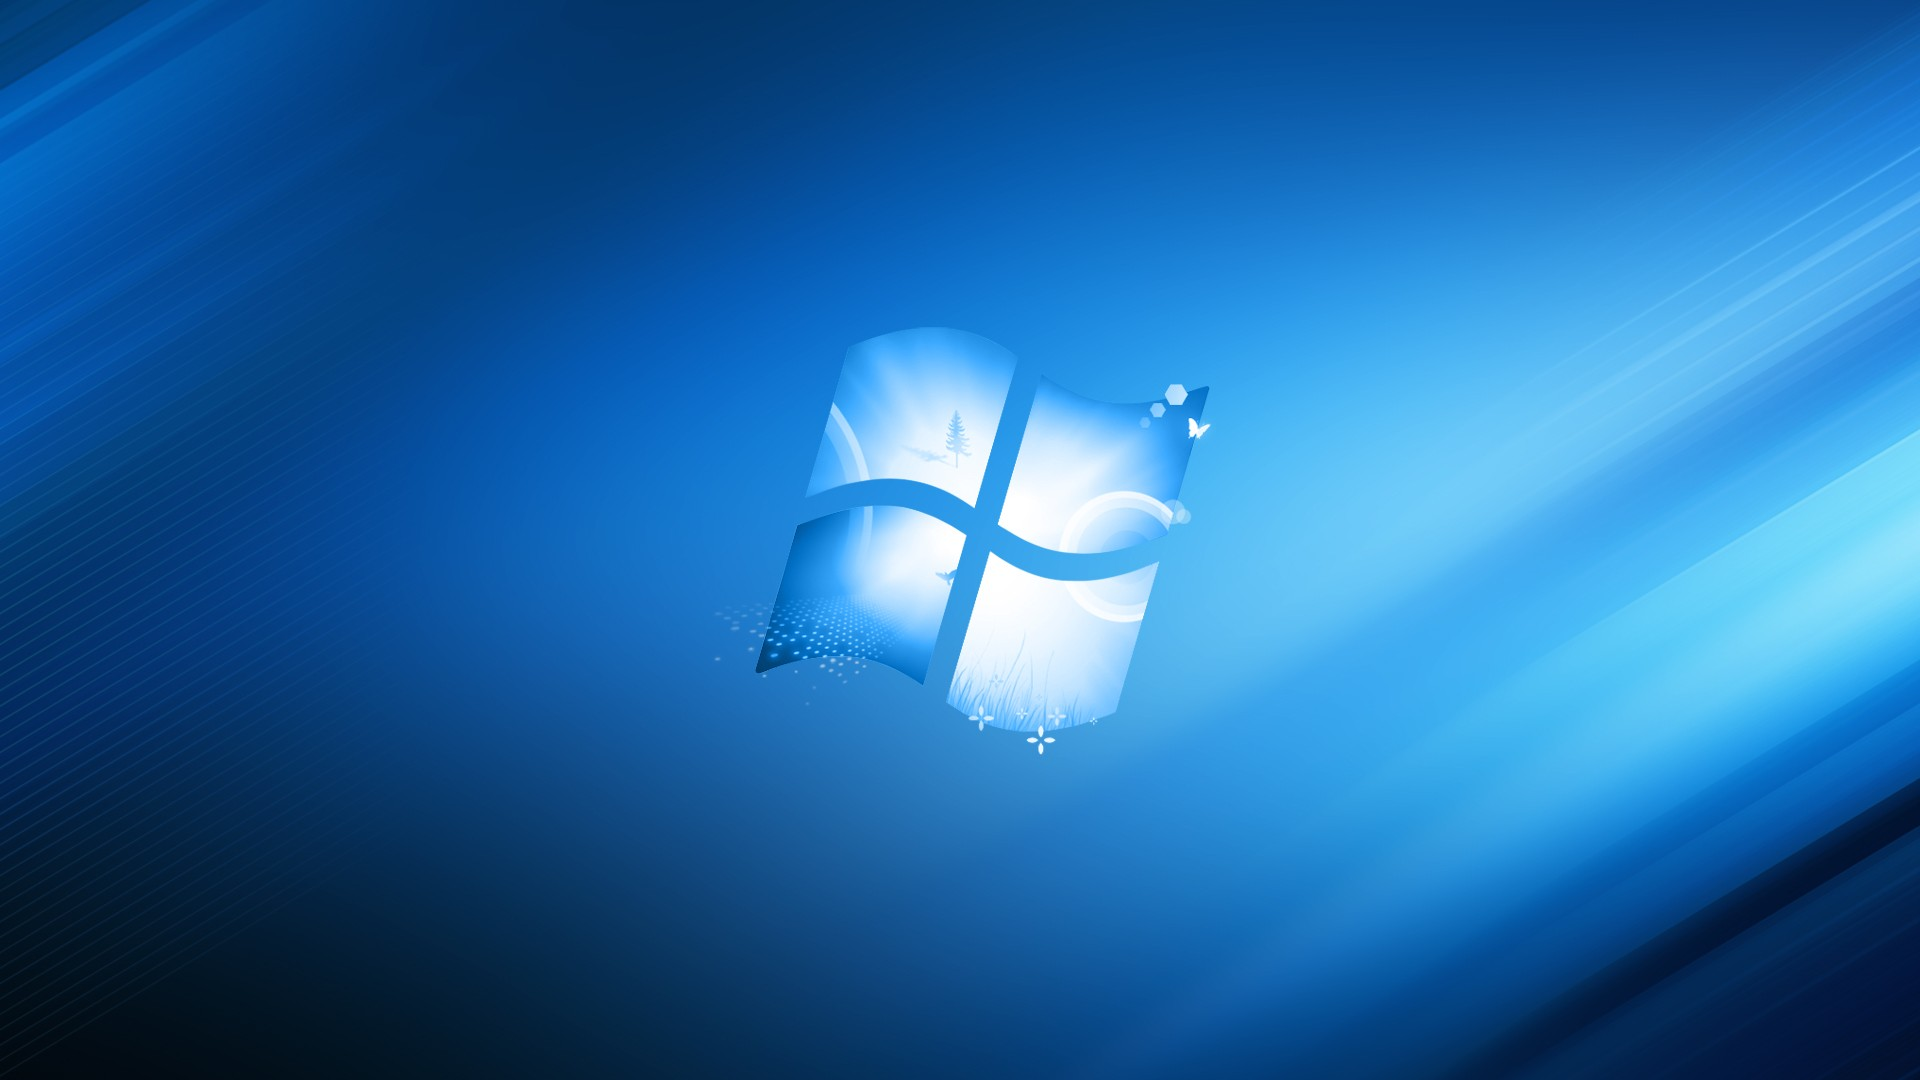 Windows wallpaper made in blue